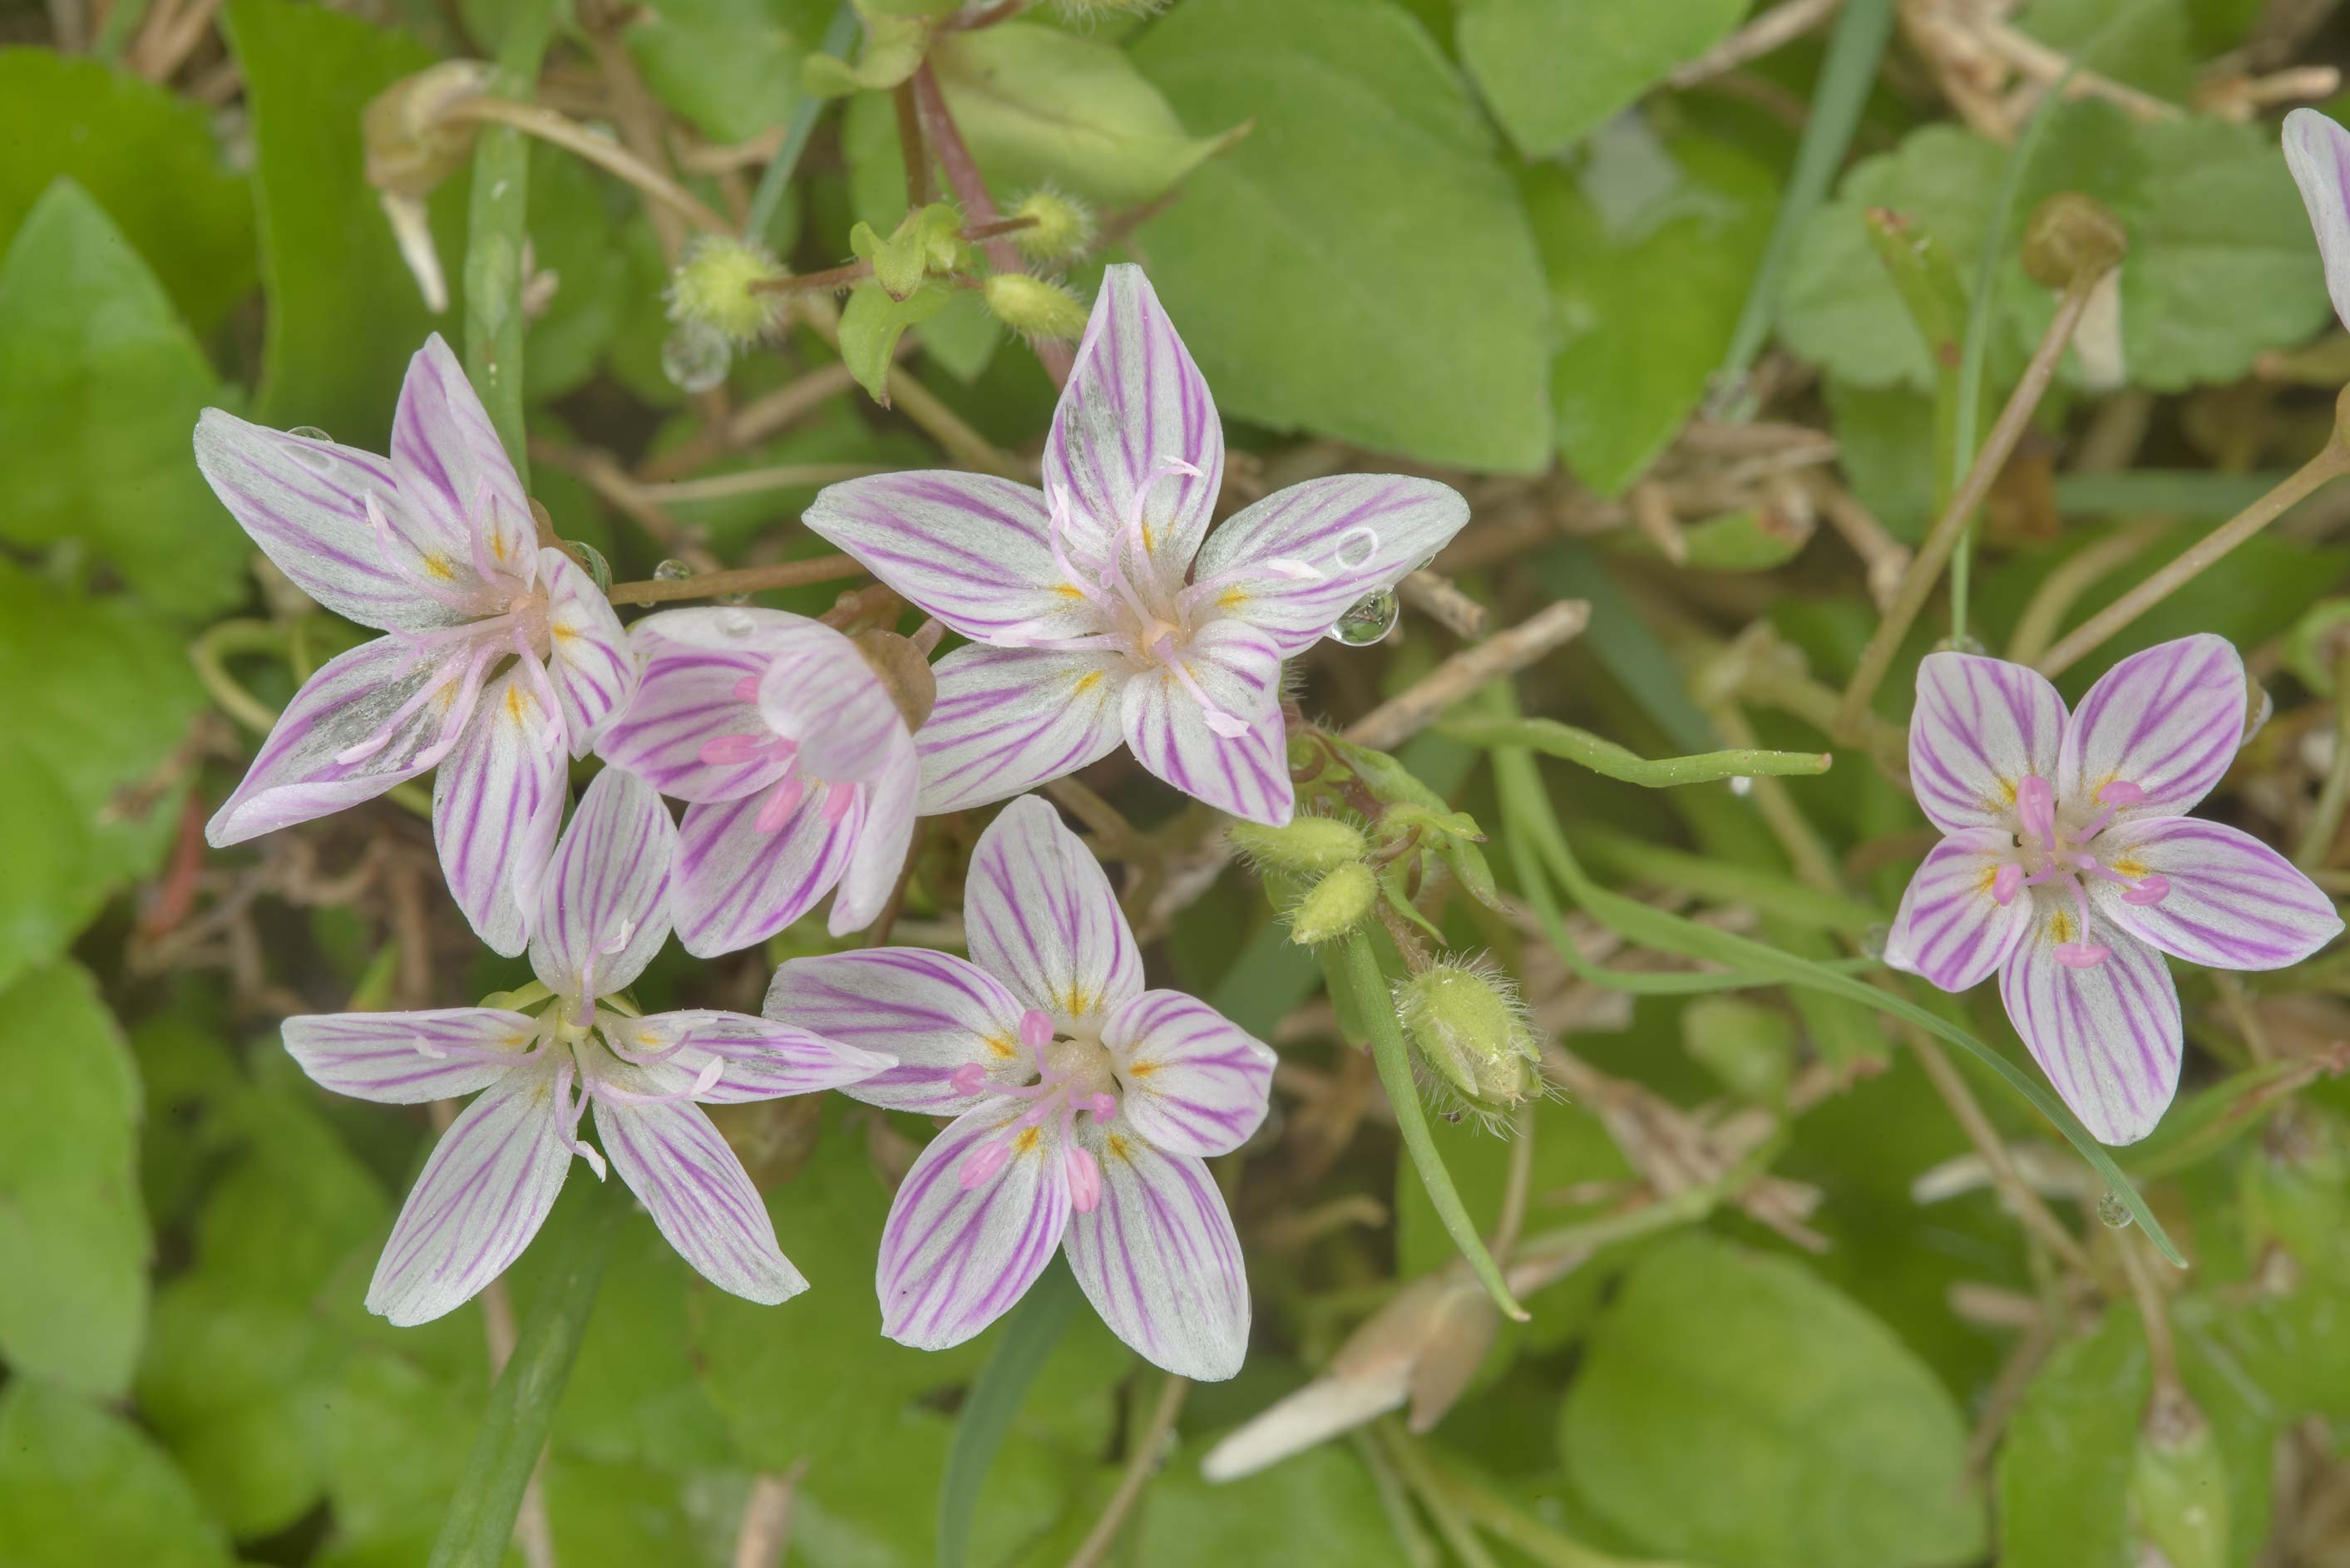 Spring beauty flowers (Claytonia virginica) in Wolf Pen Creek Park. College Station, Texas